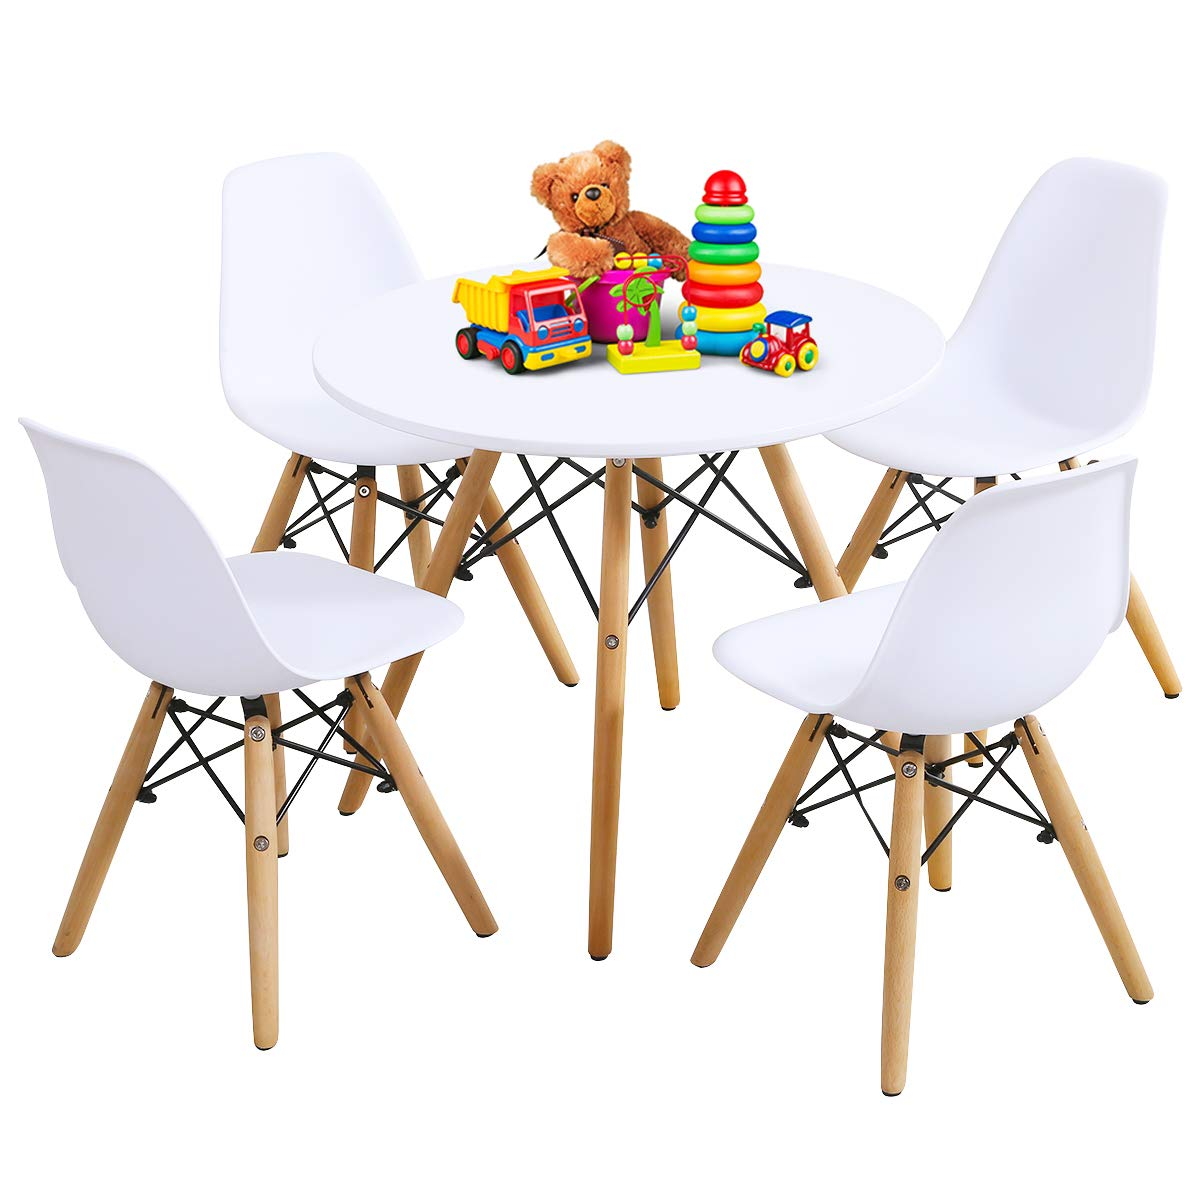 Costzon Kids Table and Chair Set, Kids Mid-Century Modern Style Table Set for Toddler Children, Kids Dining Table and Chair Set, 5-Piece Set